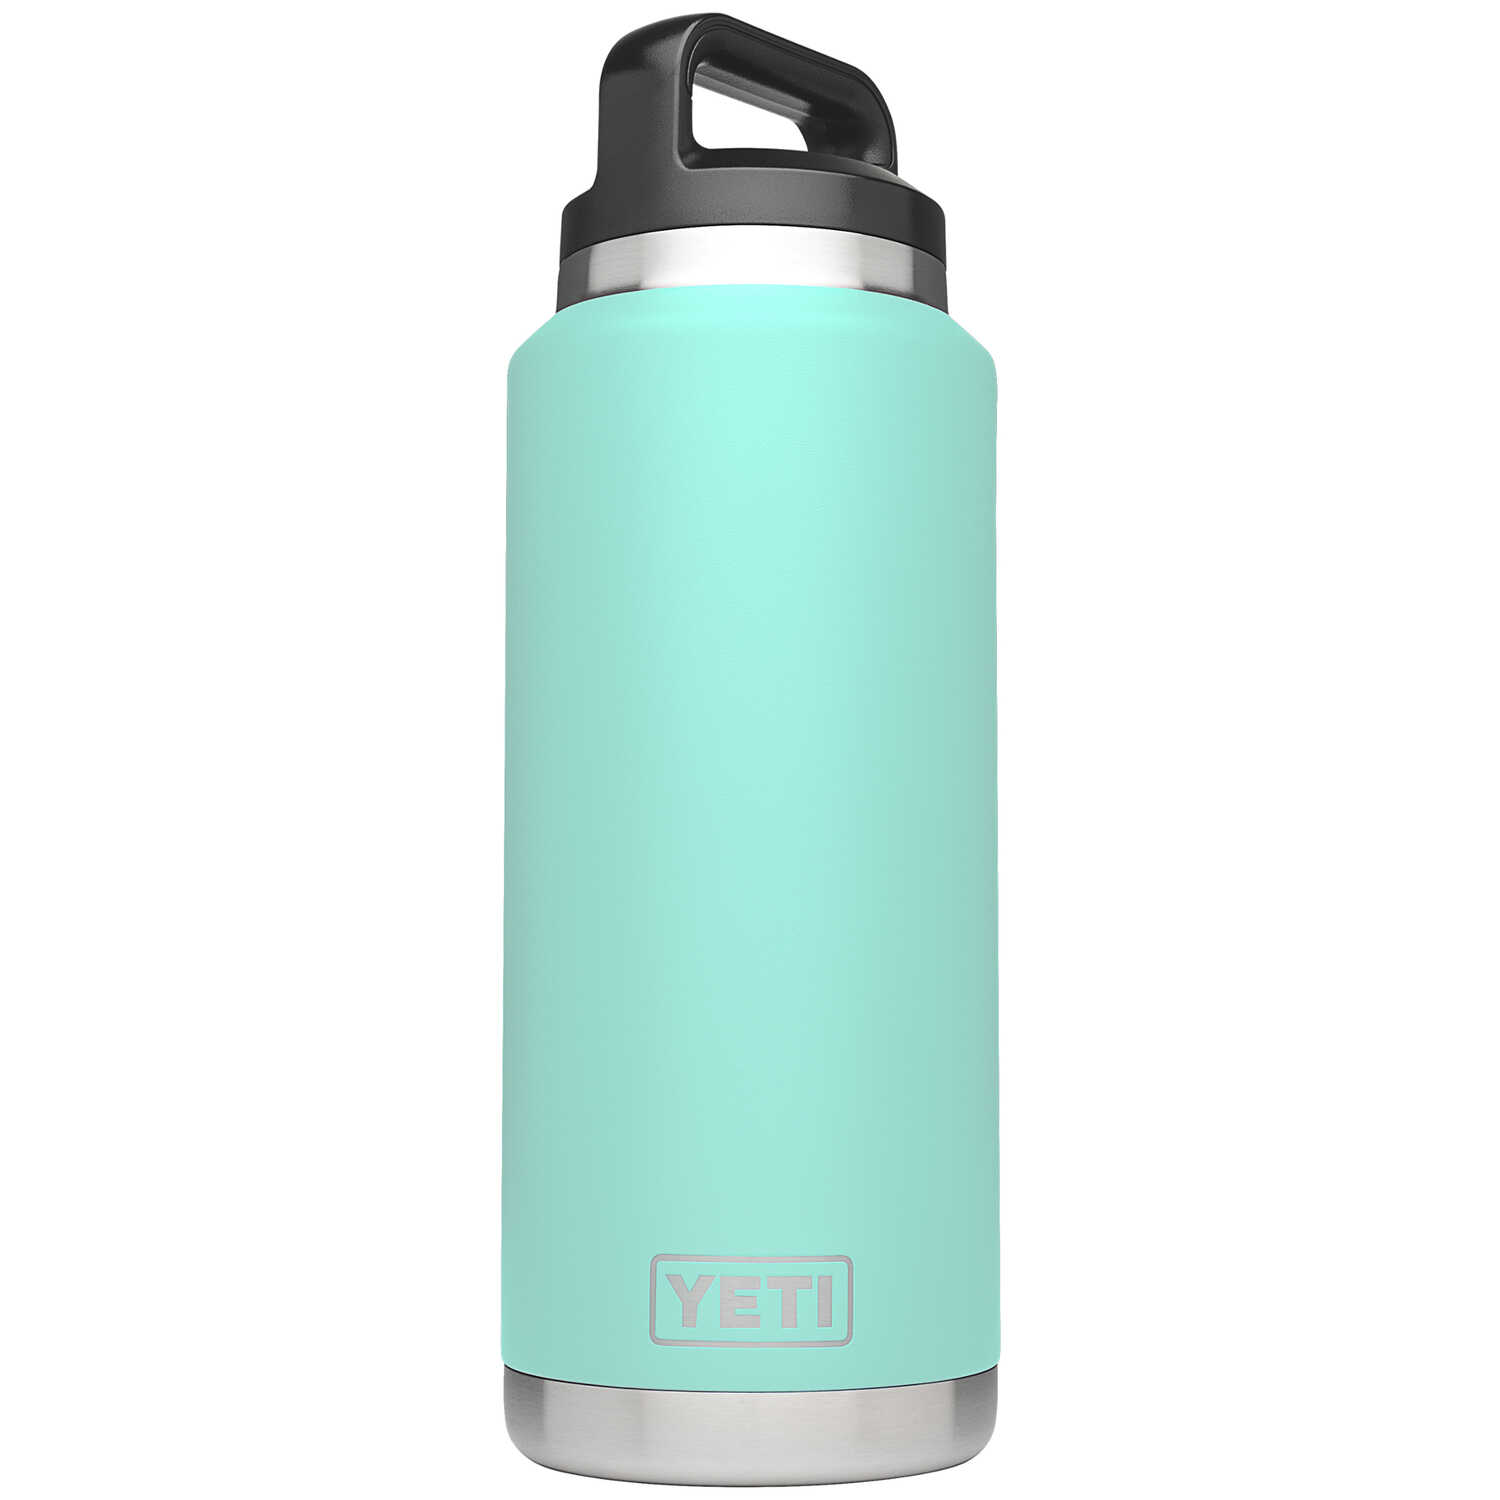 YETI  Rambler  Seafoam Green  Stainless Steel  Insulated Bottle  36 oz. BPA Free